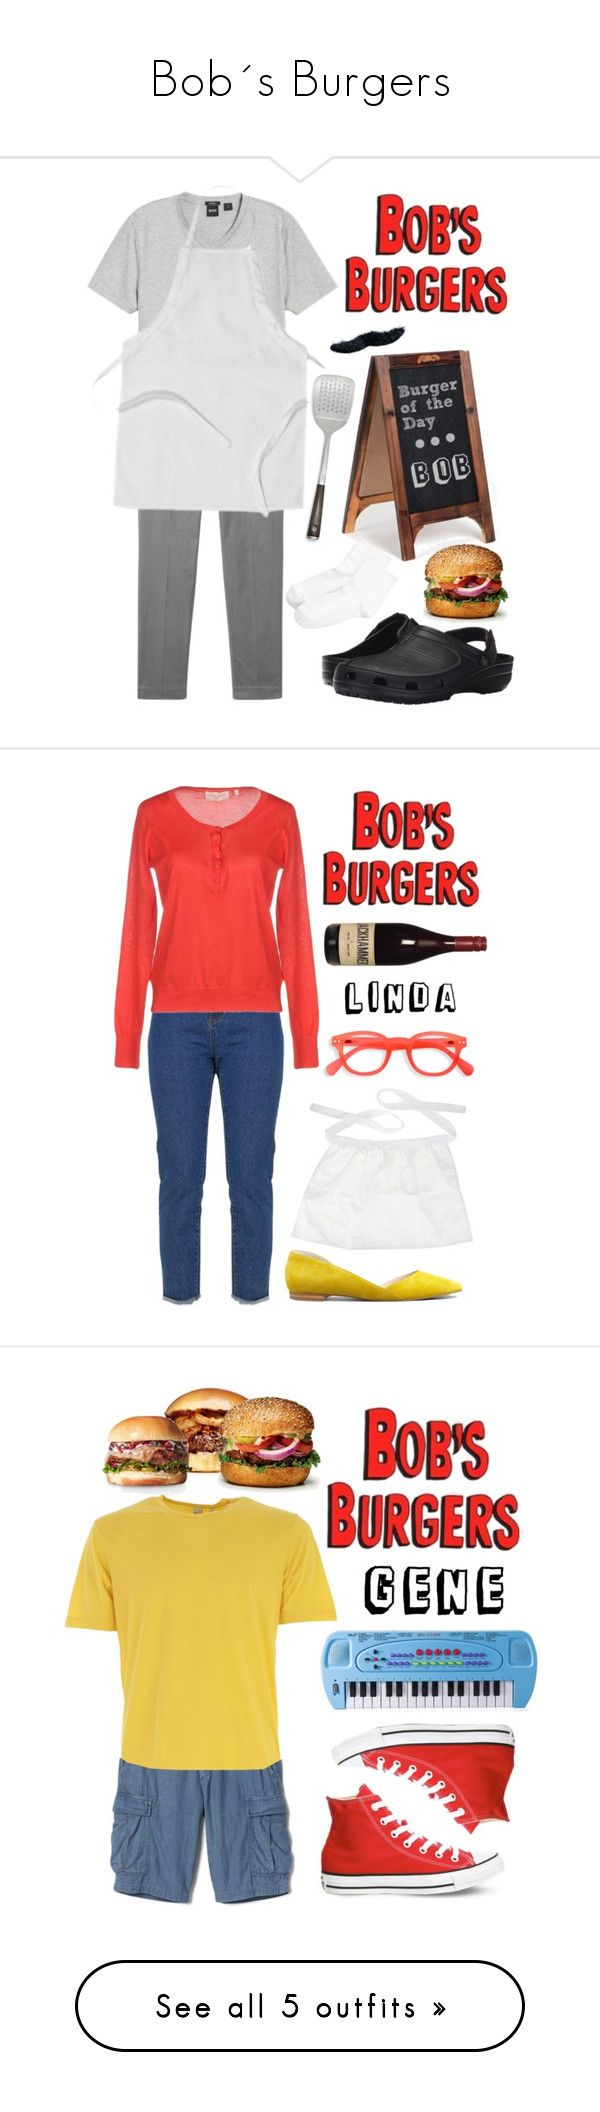 """""""Bob´s Burgers"""" by lysianna ❤ liked on Polyvore featuring MANGO MAN, BOSS Hugo Boss, Crocs, EASEL, HUE, Schmidt Brothers, BOB, bobsburgers, Marc Fisher LTD and Marie-Sixtine"""